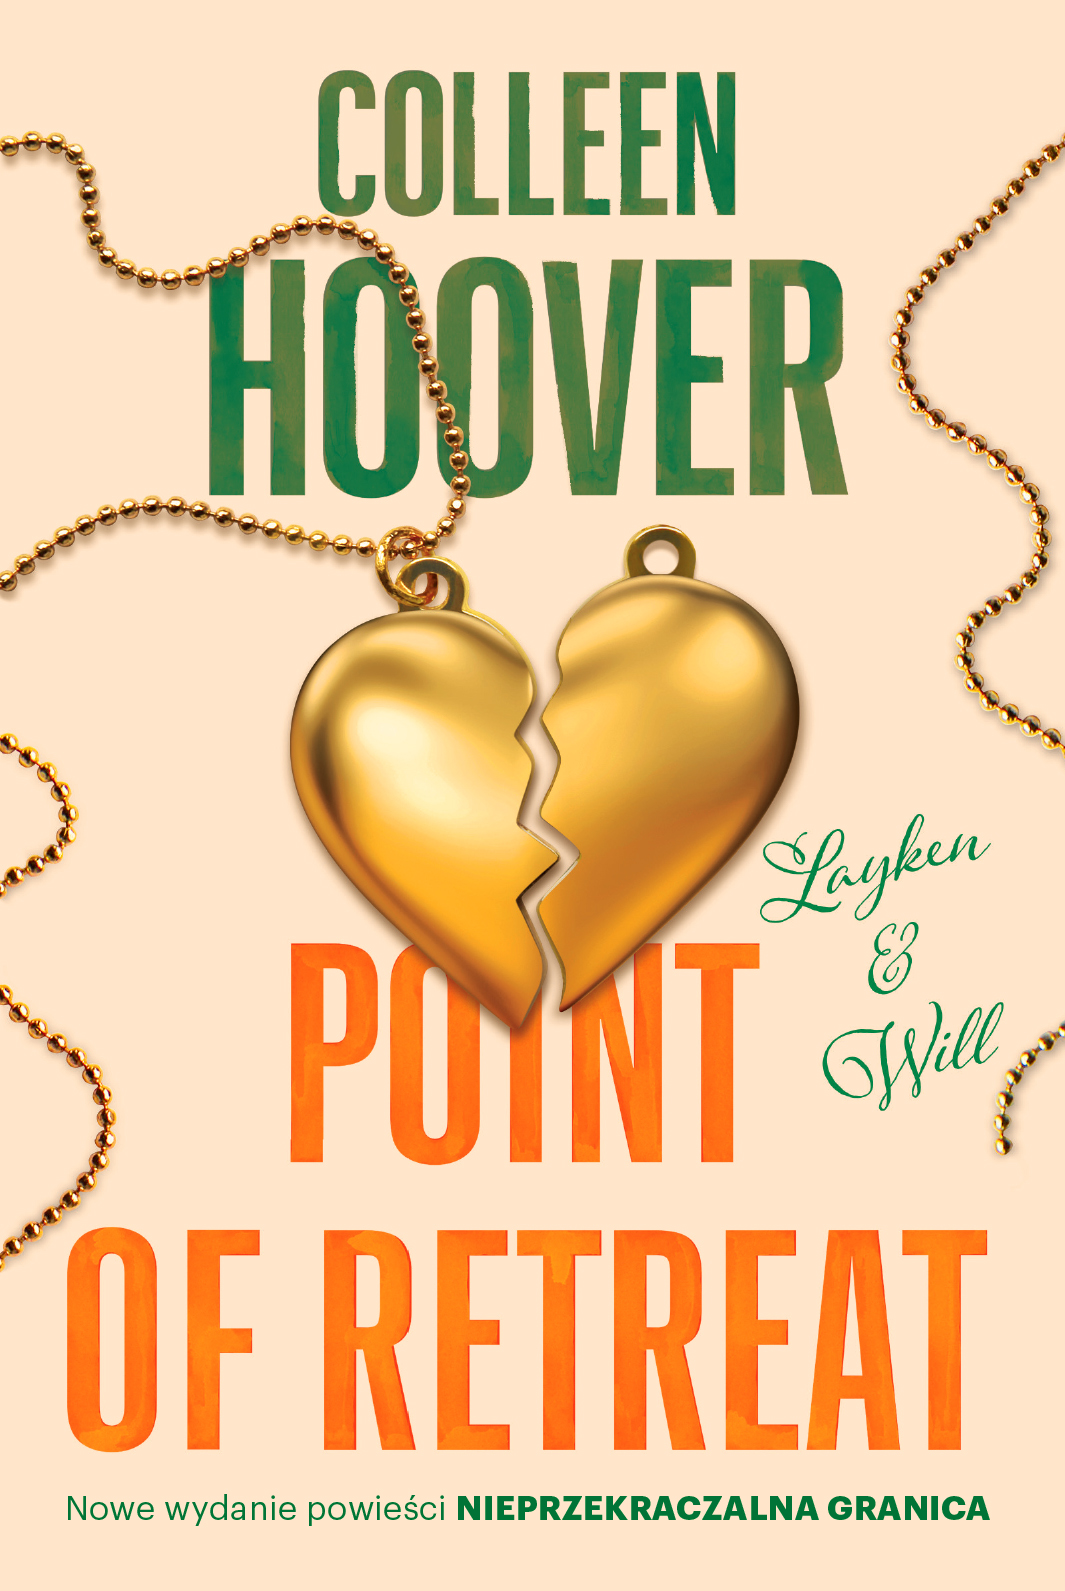 Colleen Hoover: Point of Retreat (Nieprzekraczalna granica)